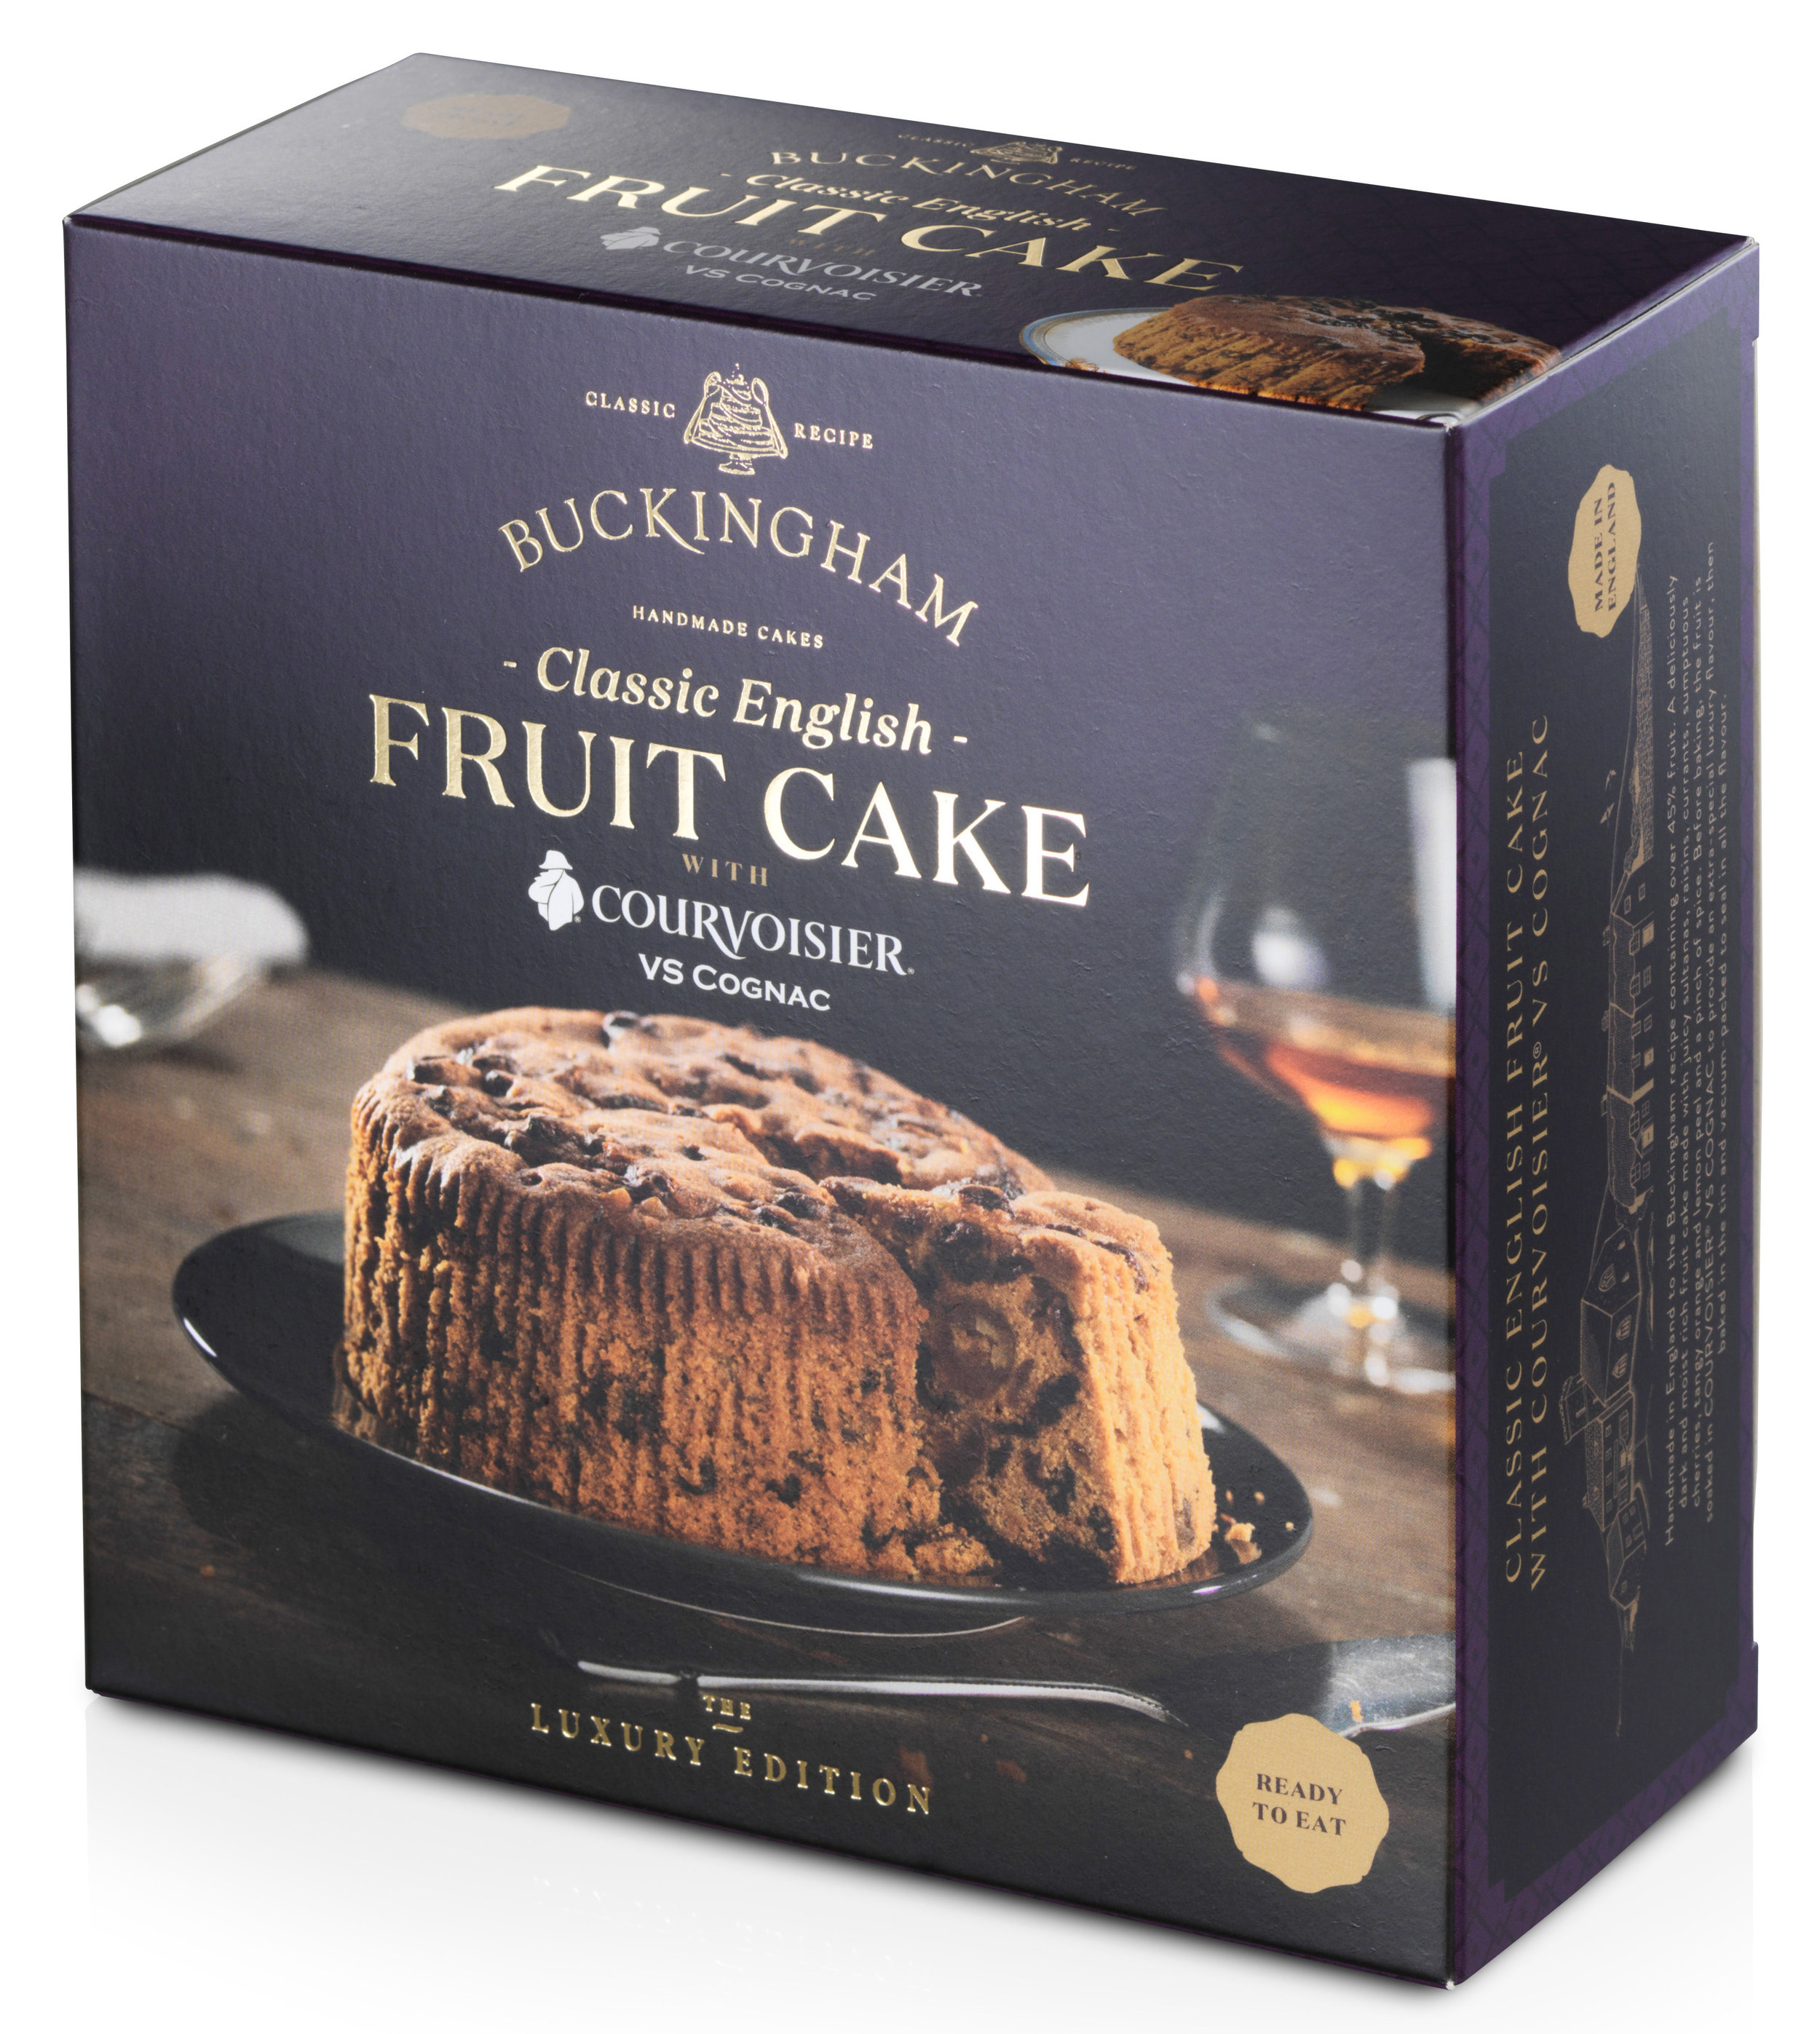 - Classic English Fruit Cake flavoured withCourvoisier® VS CognacPackaging: Vacuum-sealed tin with ring-pull, packed inside elegant gift box.Pack Sizes: 6 x 280g, 6 x 700gStorage: AmbientShelf-life: 24 monthsRecipe: Pure butter. Over 45% fruit.No artificial colours or flavours.